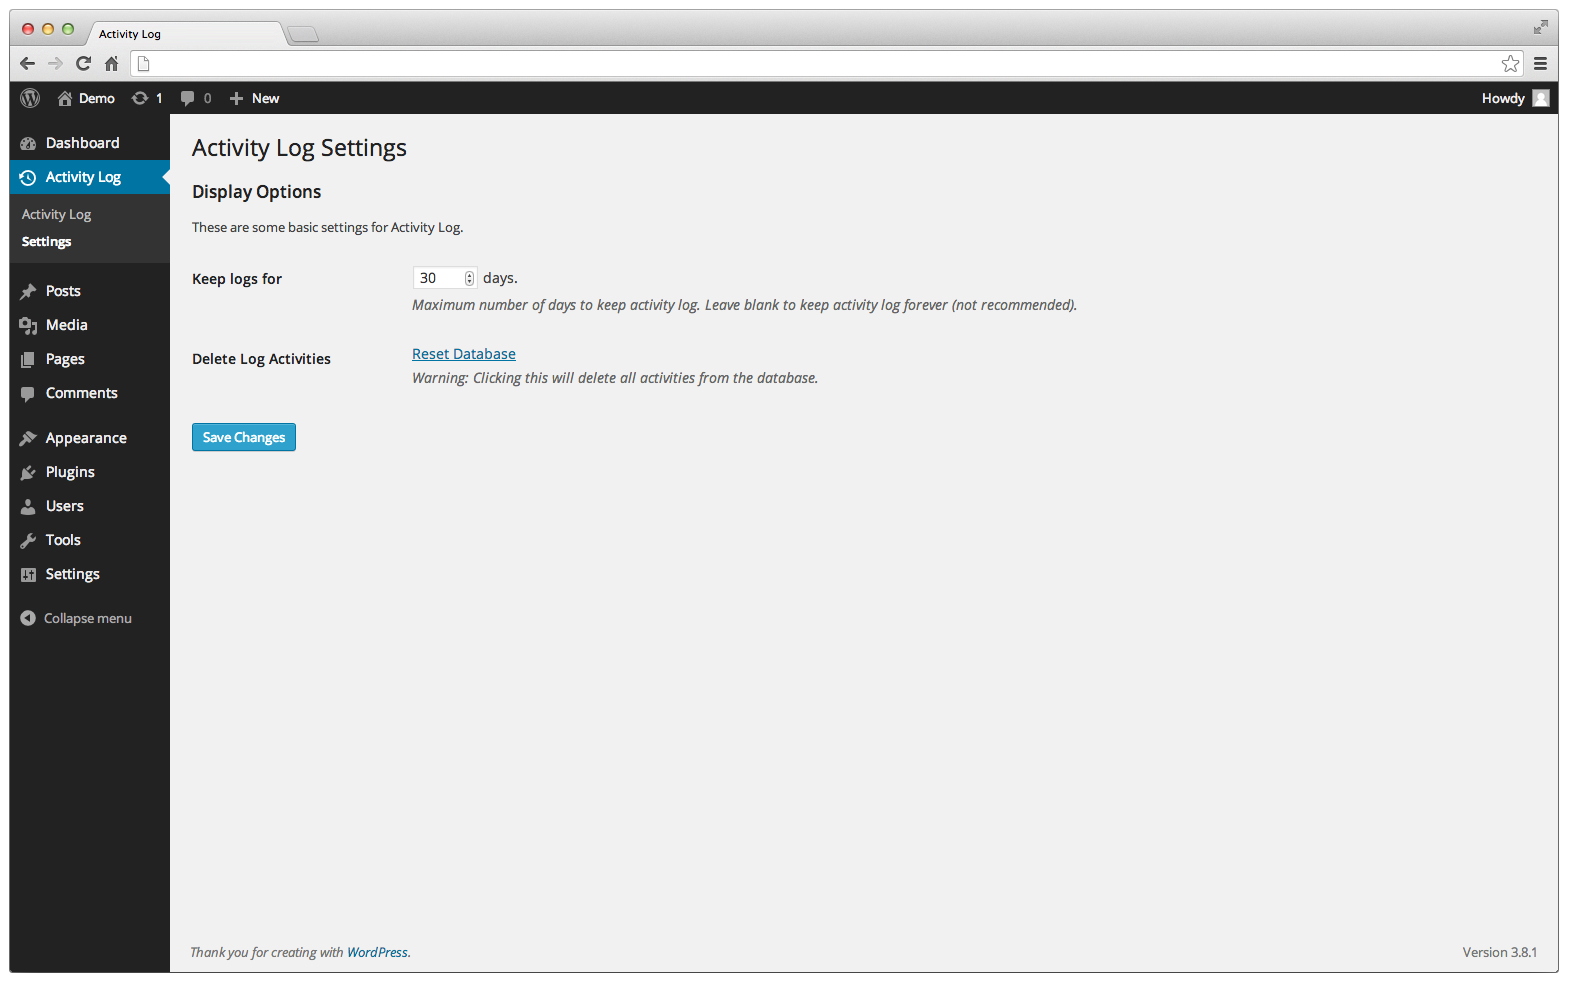 The settings page